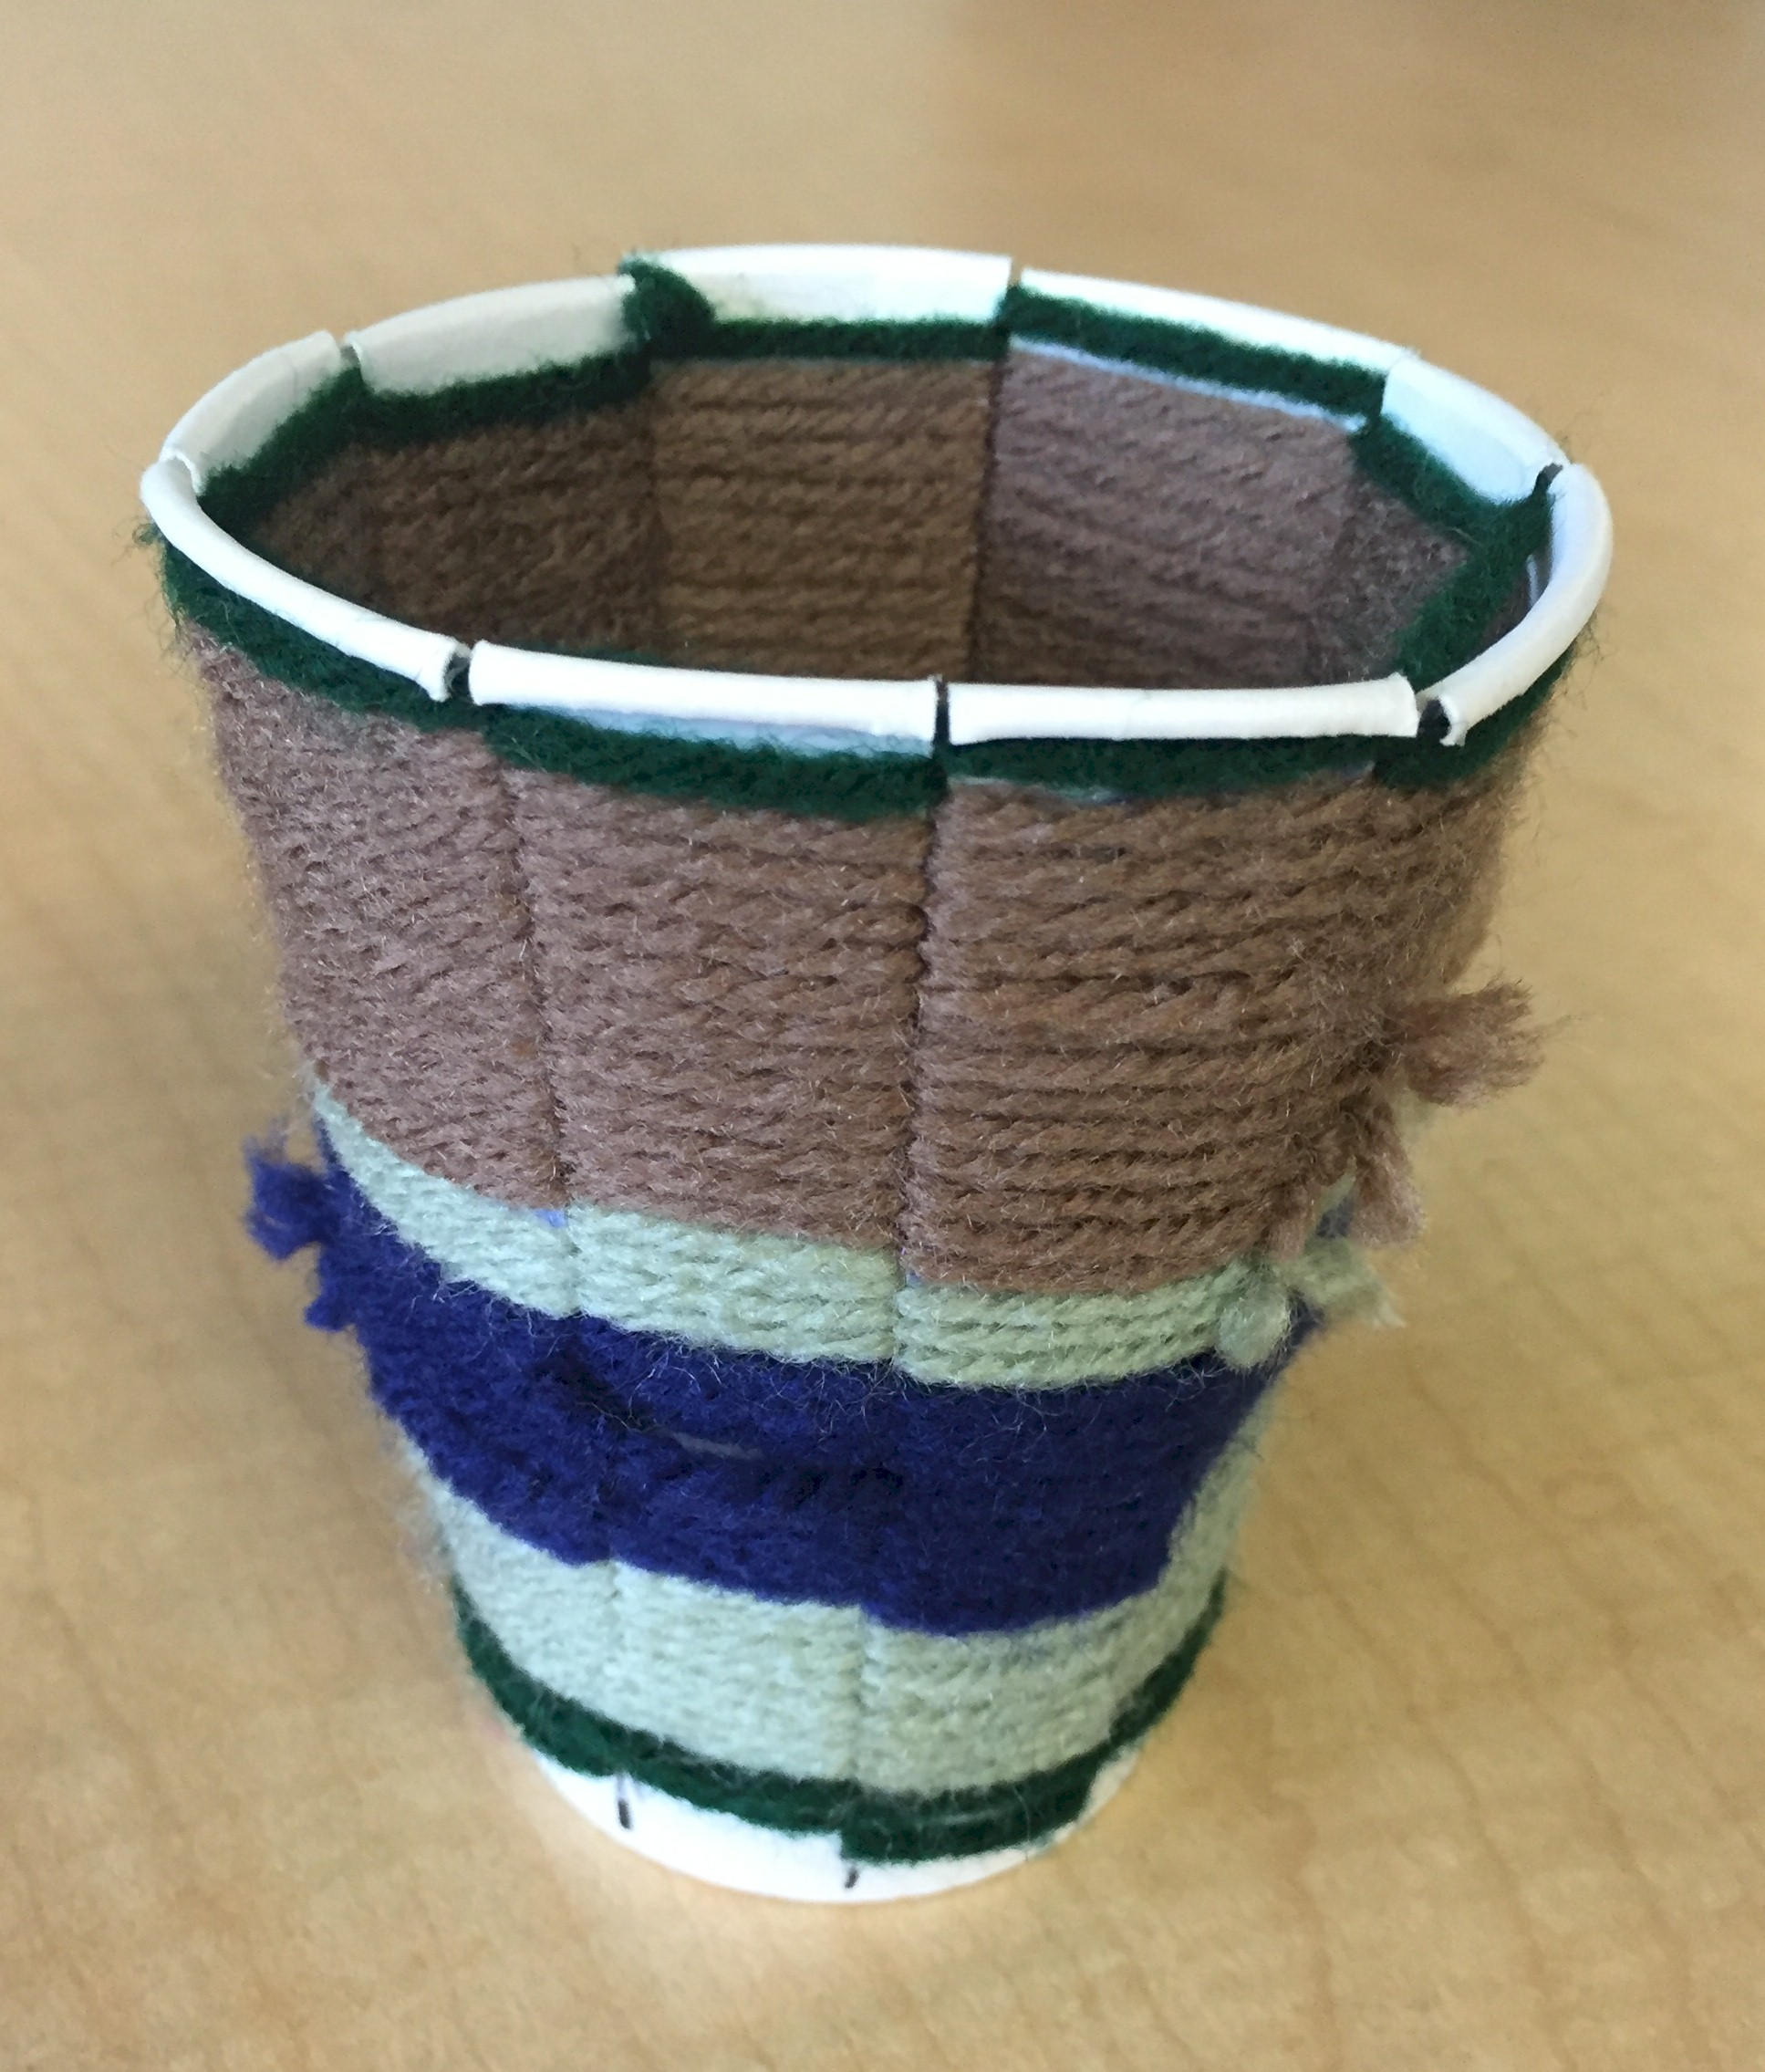 Image of Cup Weaving